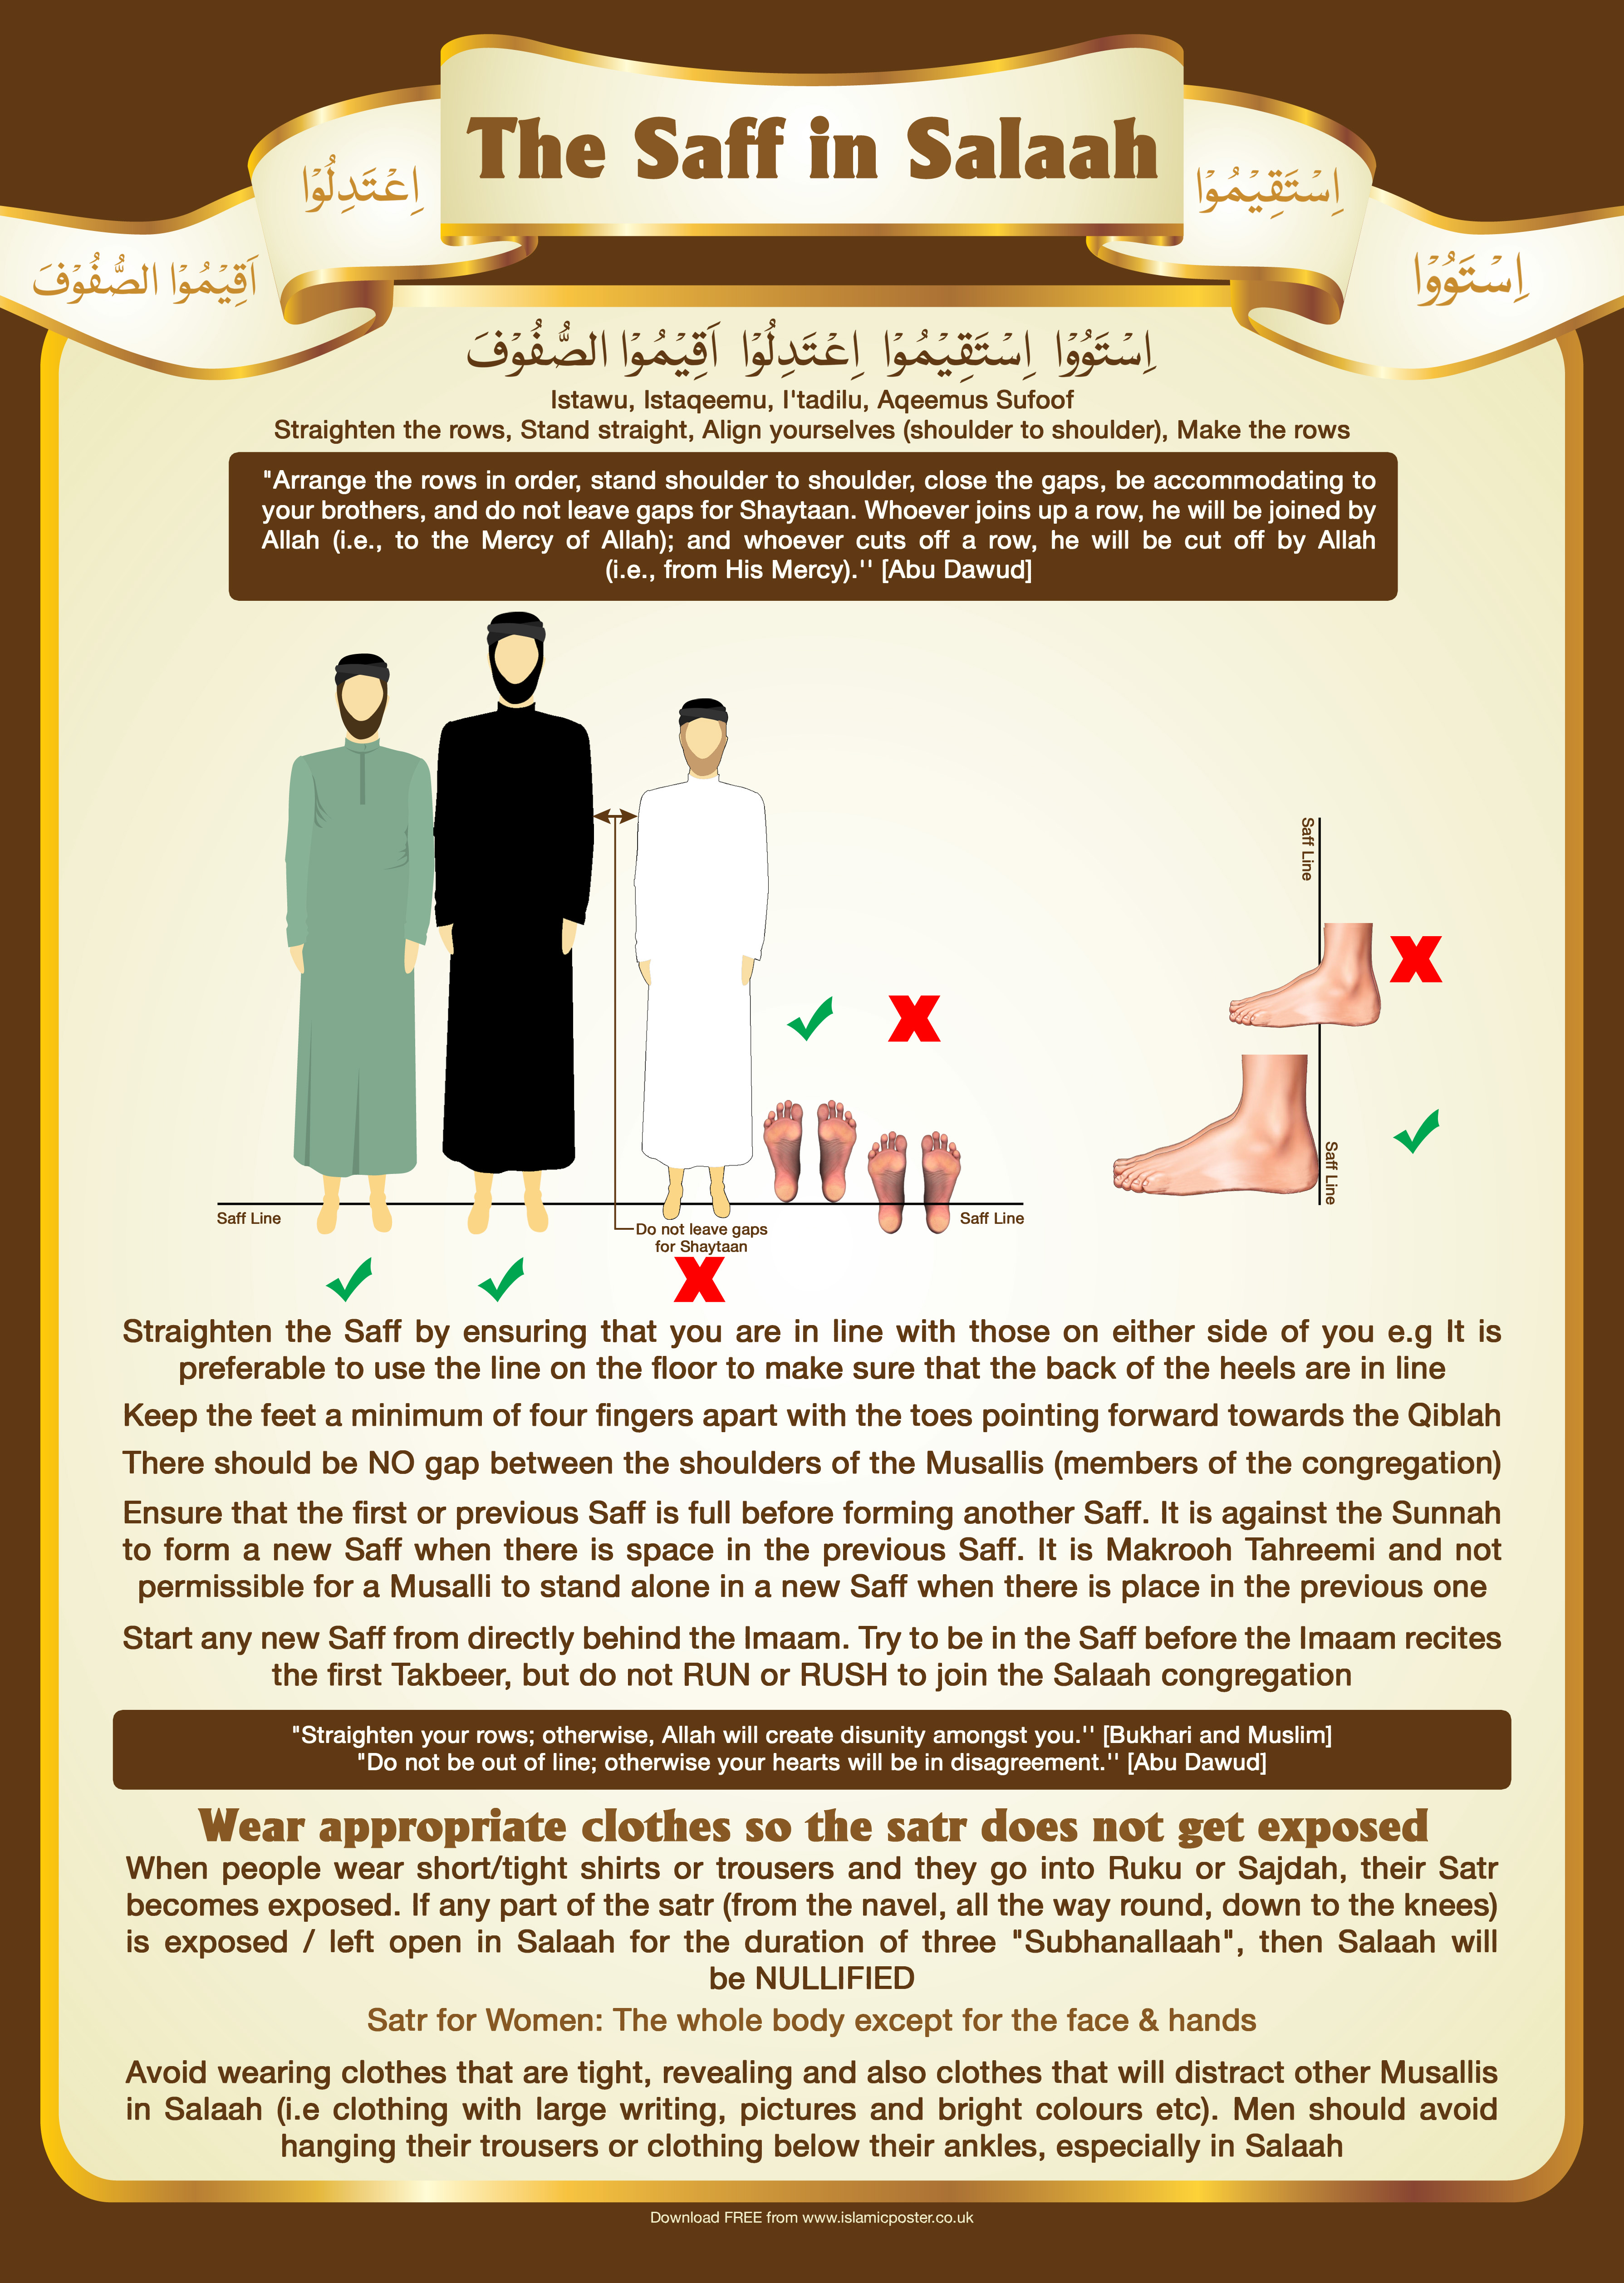 New 5 - The Saff in Salaah - Do not leave Gaps and straighten the rows and do not expose your Satr - A1